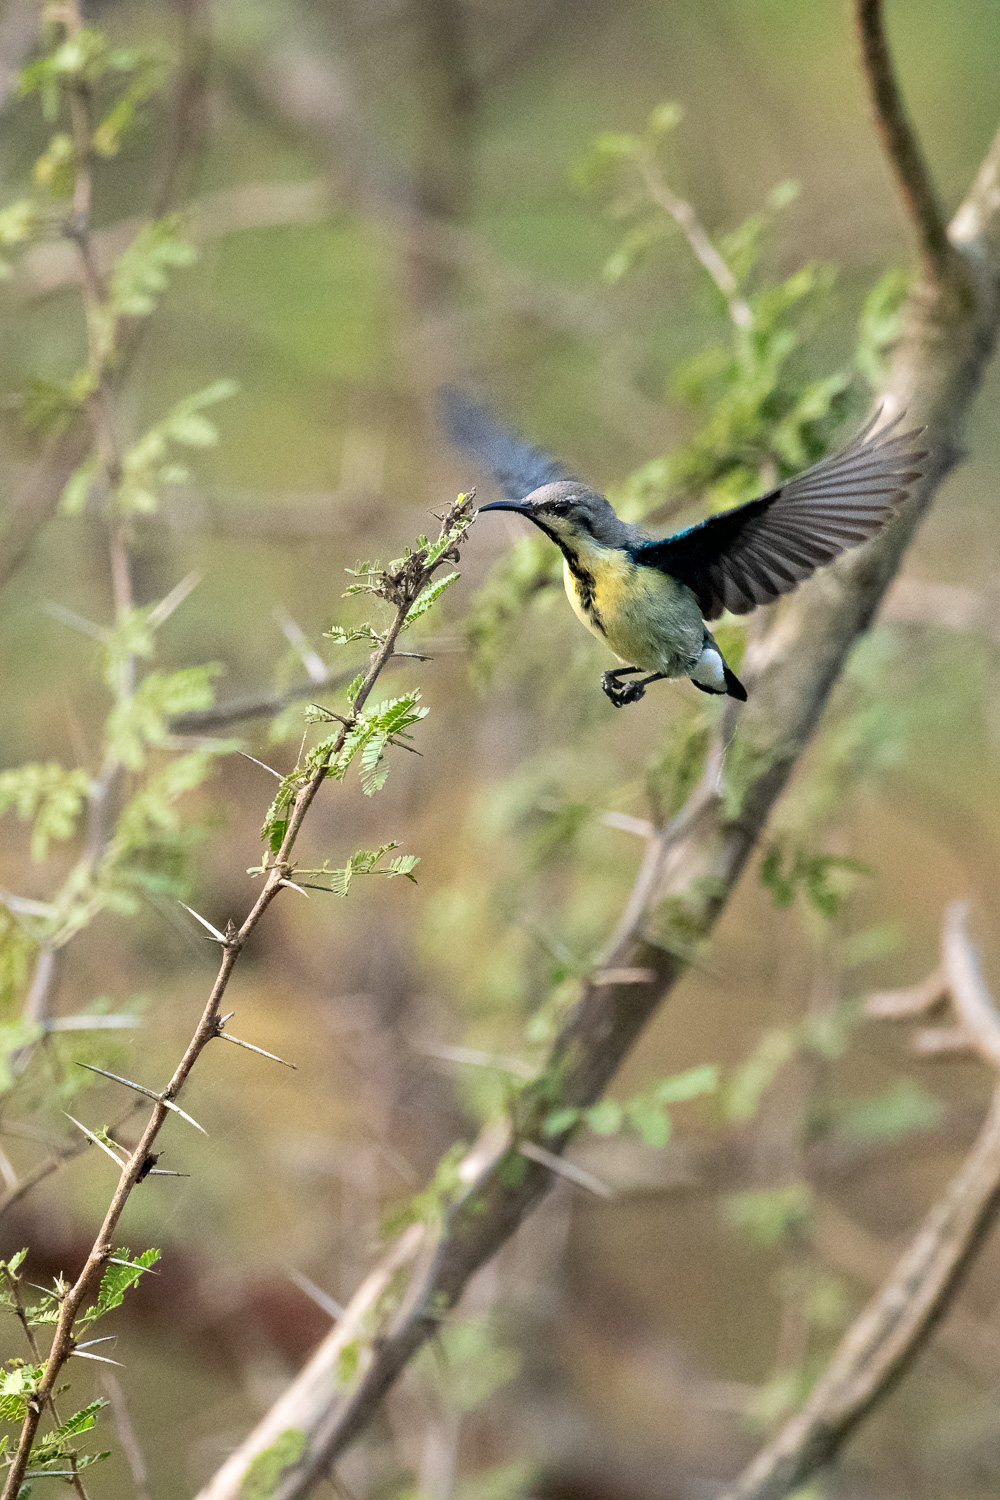 How to Choose the Best Lens for Wildlife Photography - sunbird in flight